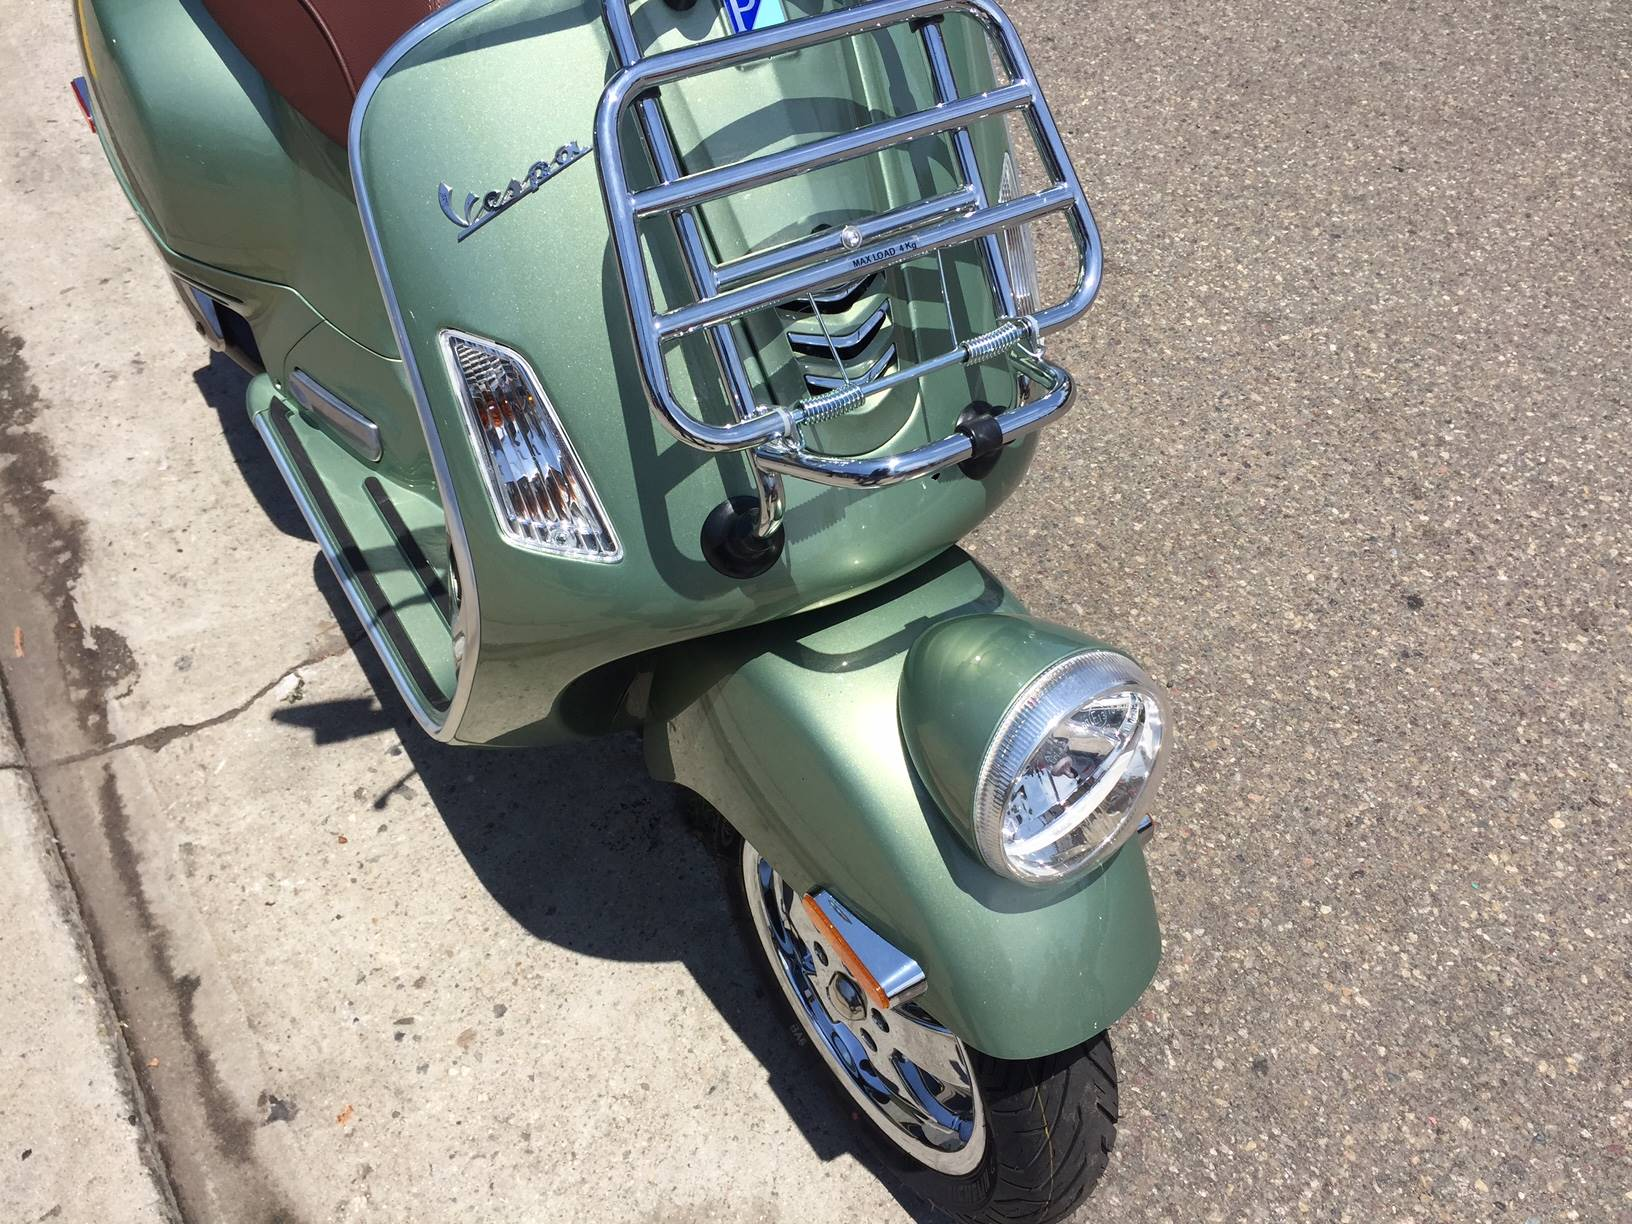 2017 Vespa GTV 300 in Marina Del Rey, California